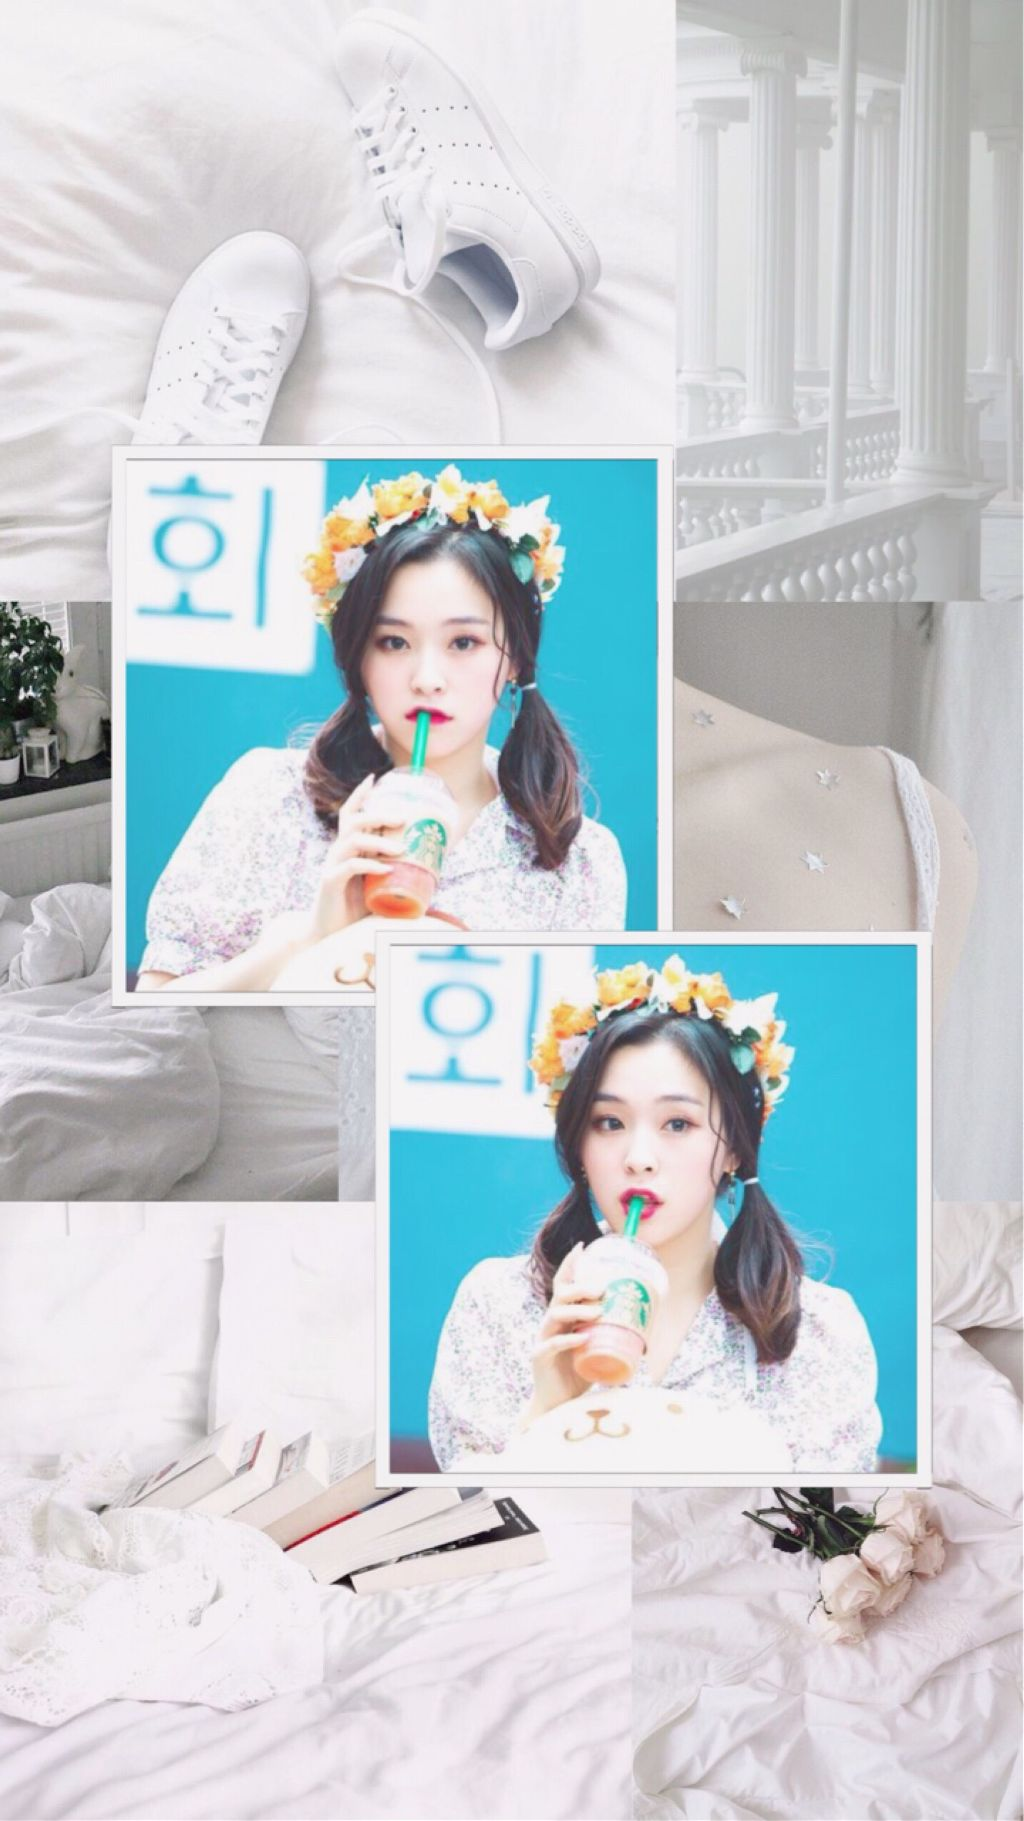 Dreamcatcher Gahyeon Wallpaper Kpop Dreamcatcher